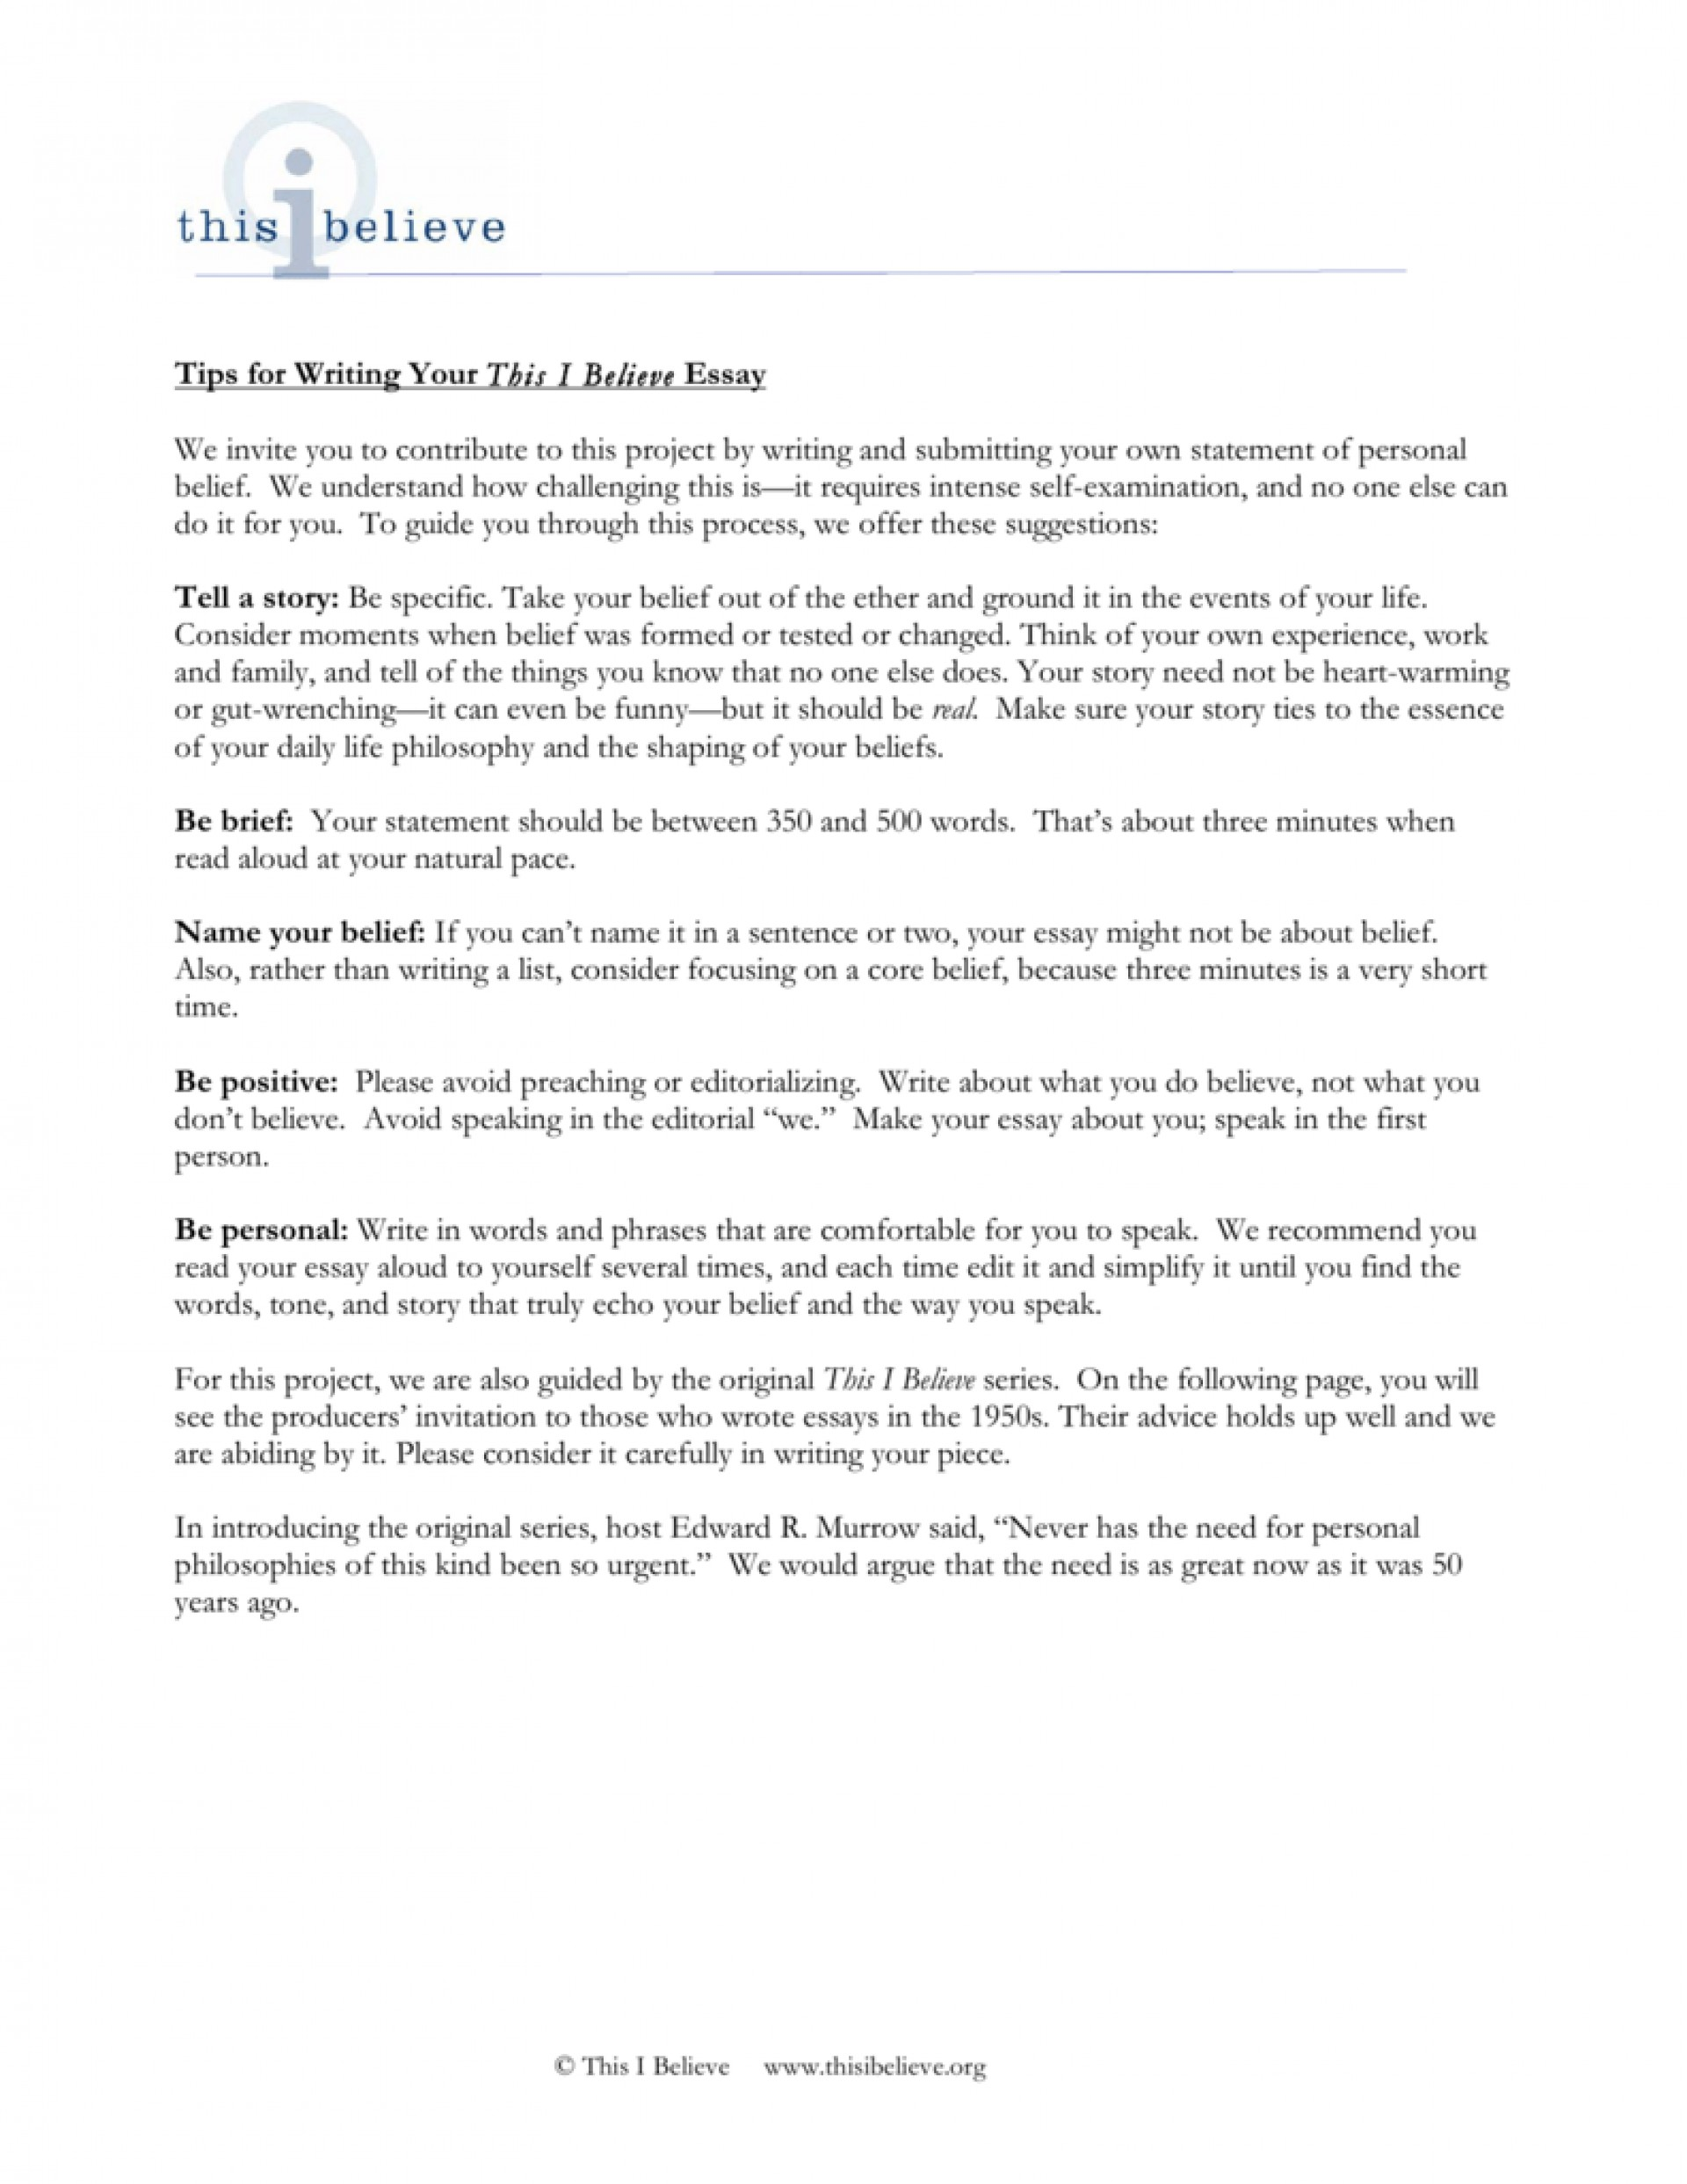 005 Essay Example How To Write This I Believe 008807221 1 Fantastic A Things On What 1920